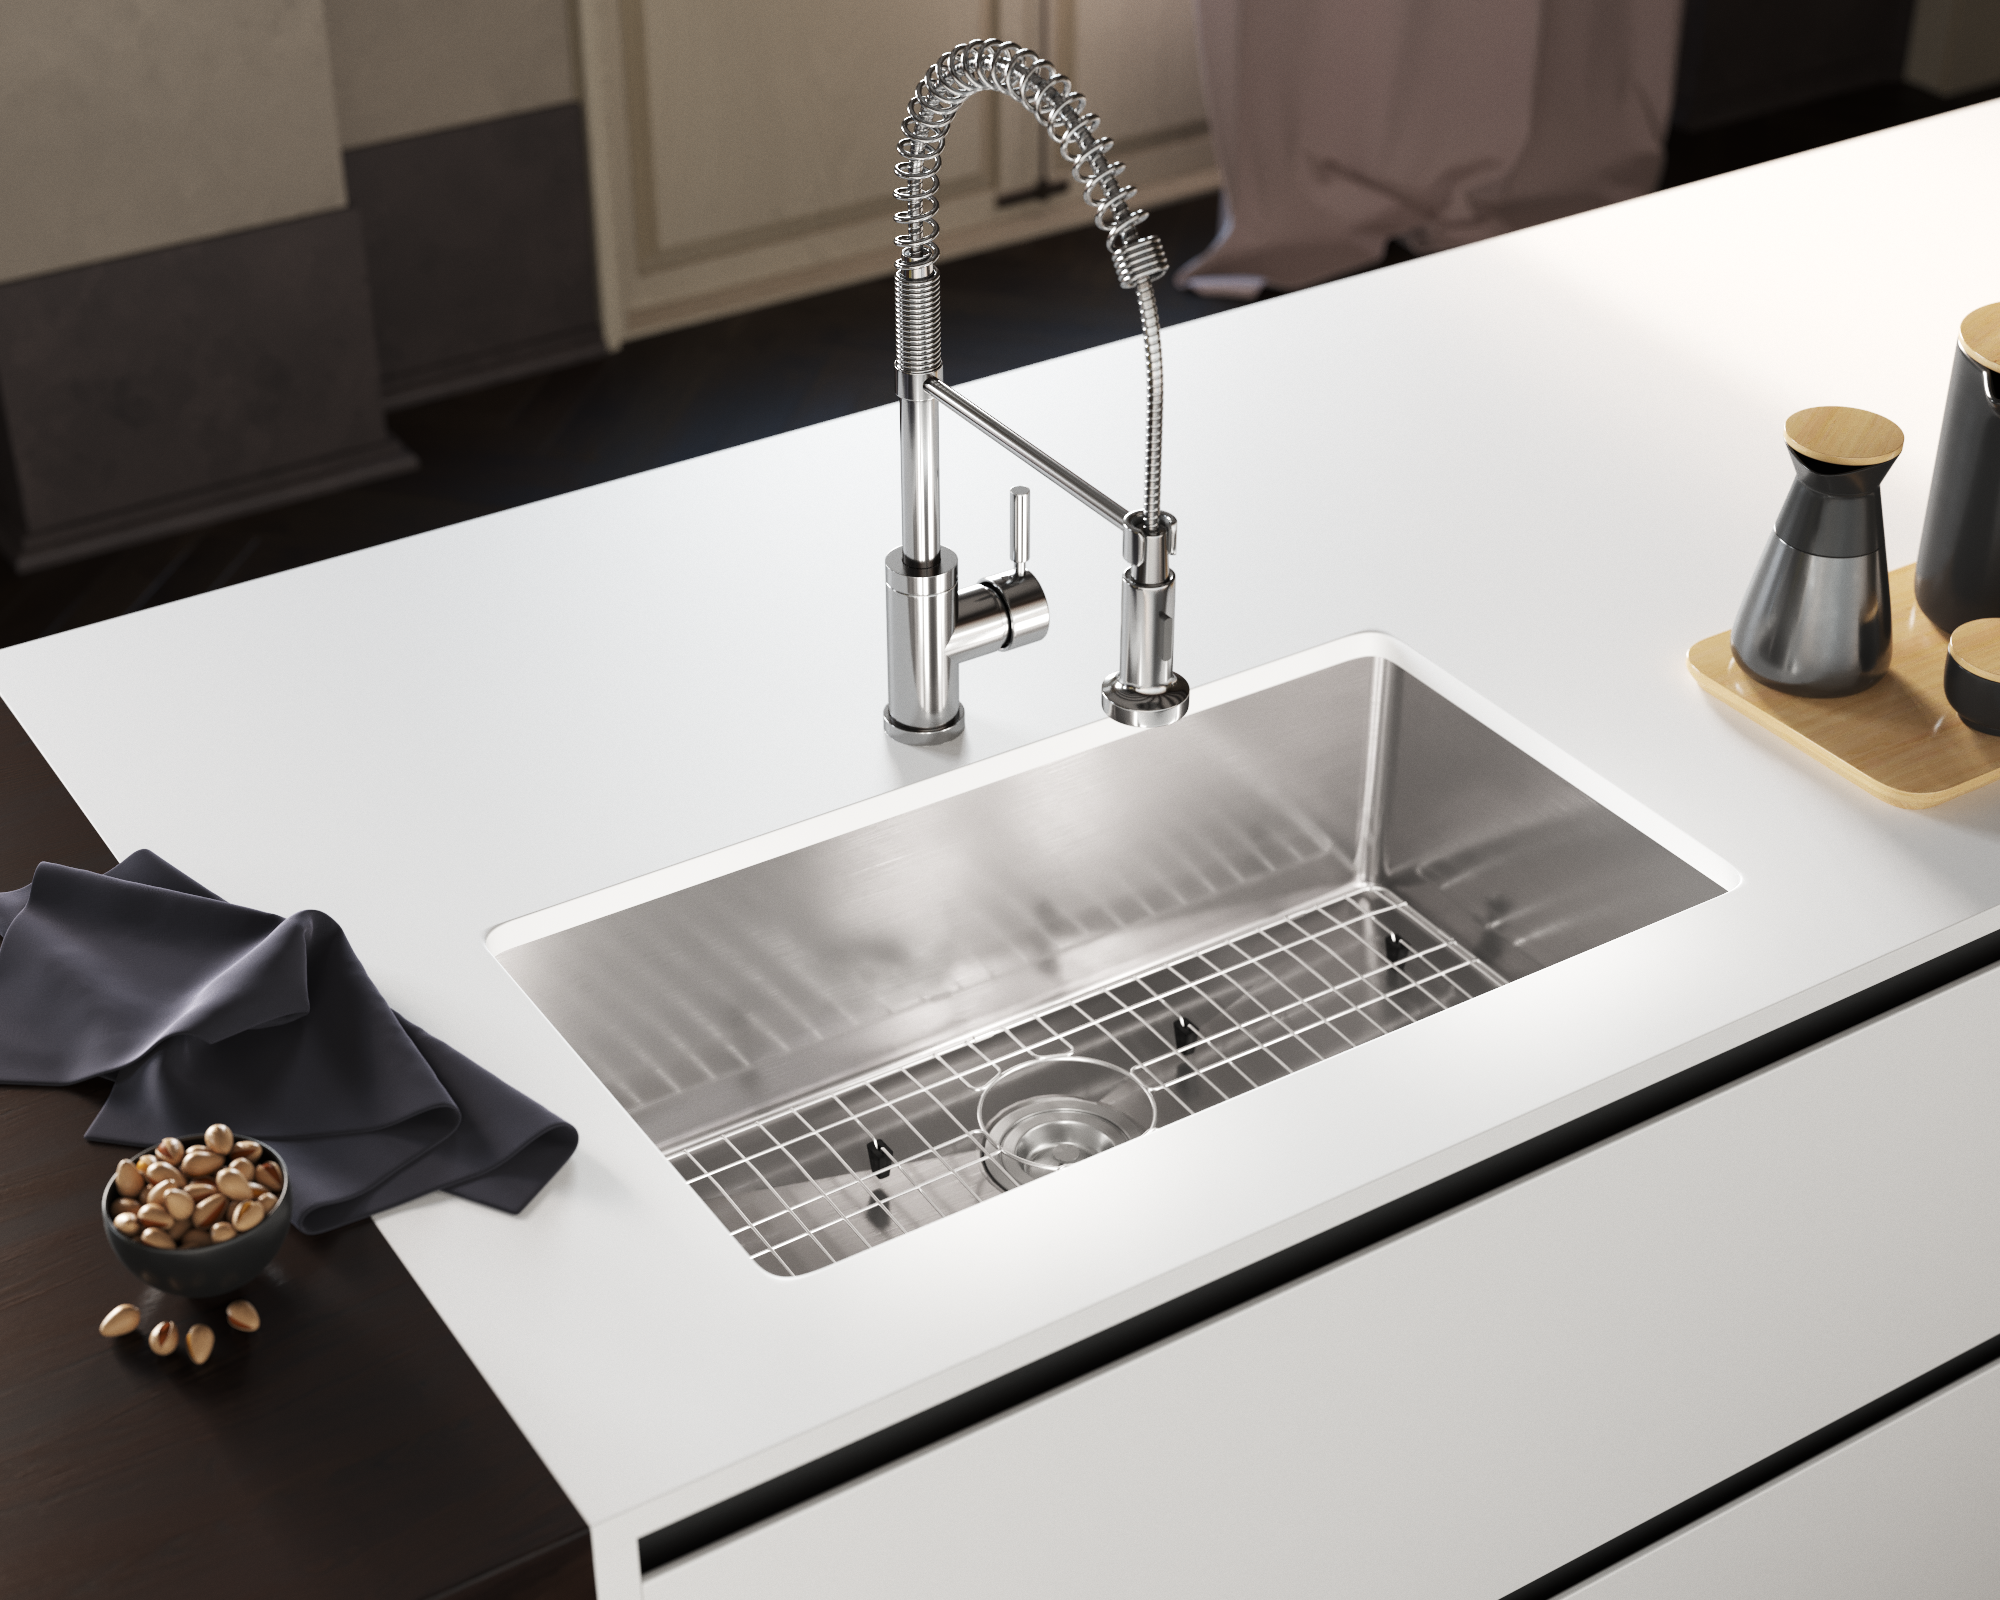 All Included Stainless Steel Sink Grid Is Perfect For Cooking Whether It S For Two Or For A Small Gathering Discover The Sink Sink Grid Stainless Steel Sinks